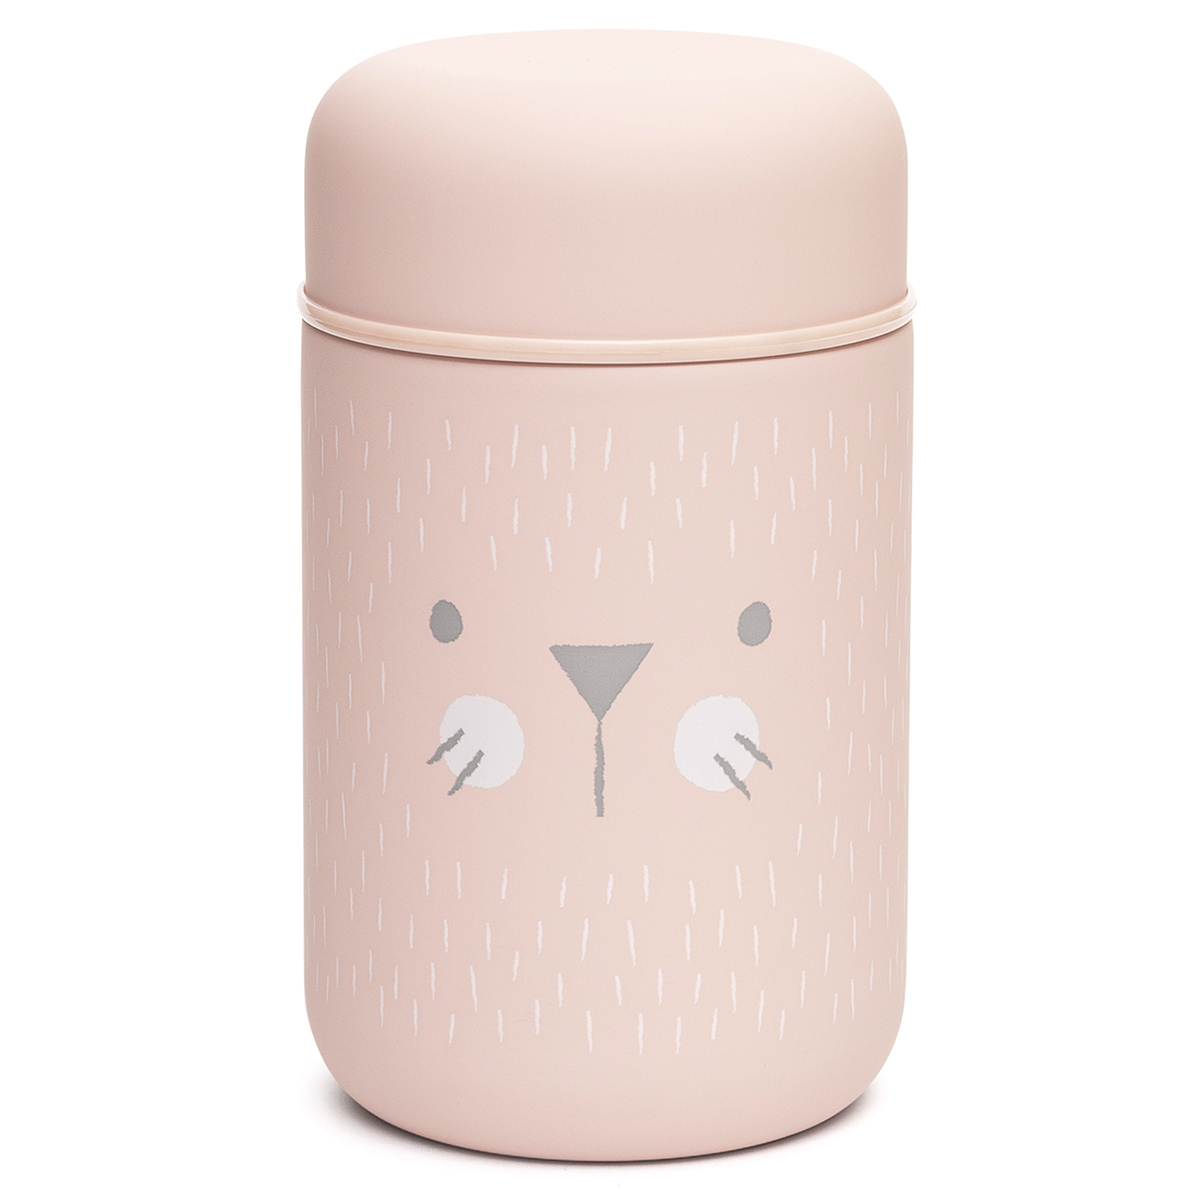 Vaisselle & Couvert Pot Isotherme Hygge Baby - Rose Pot Isotherme Hygge Baby - Rose